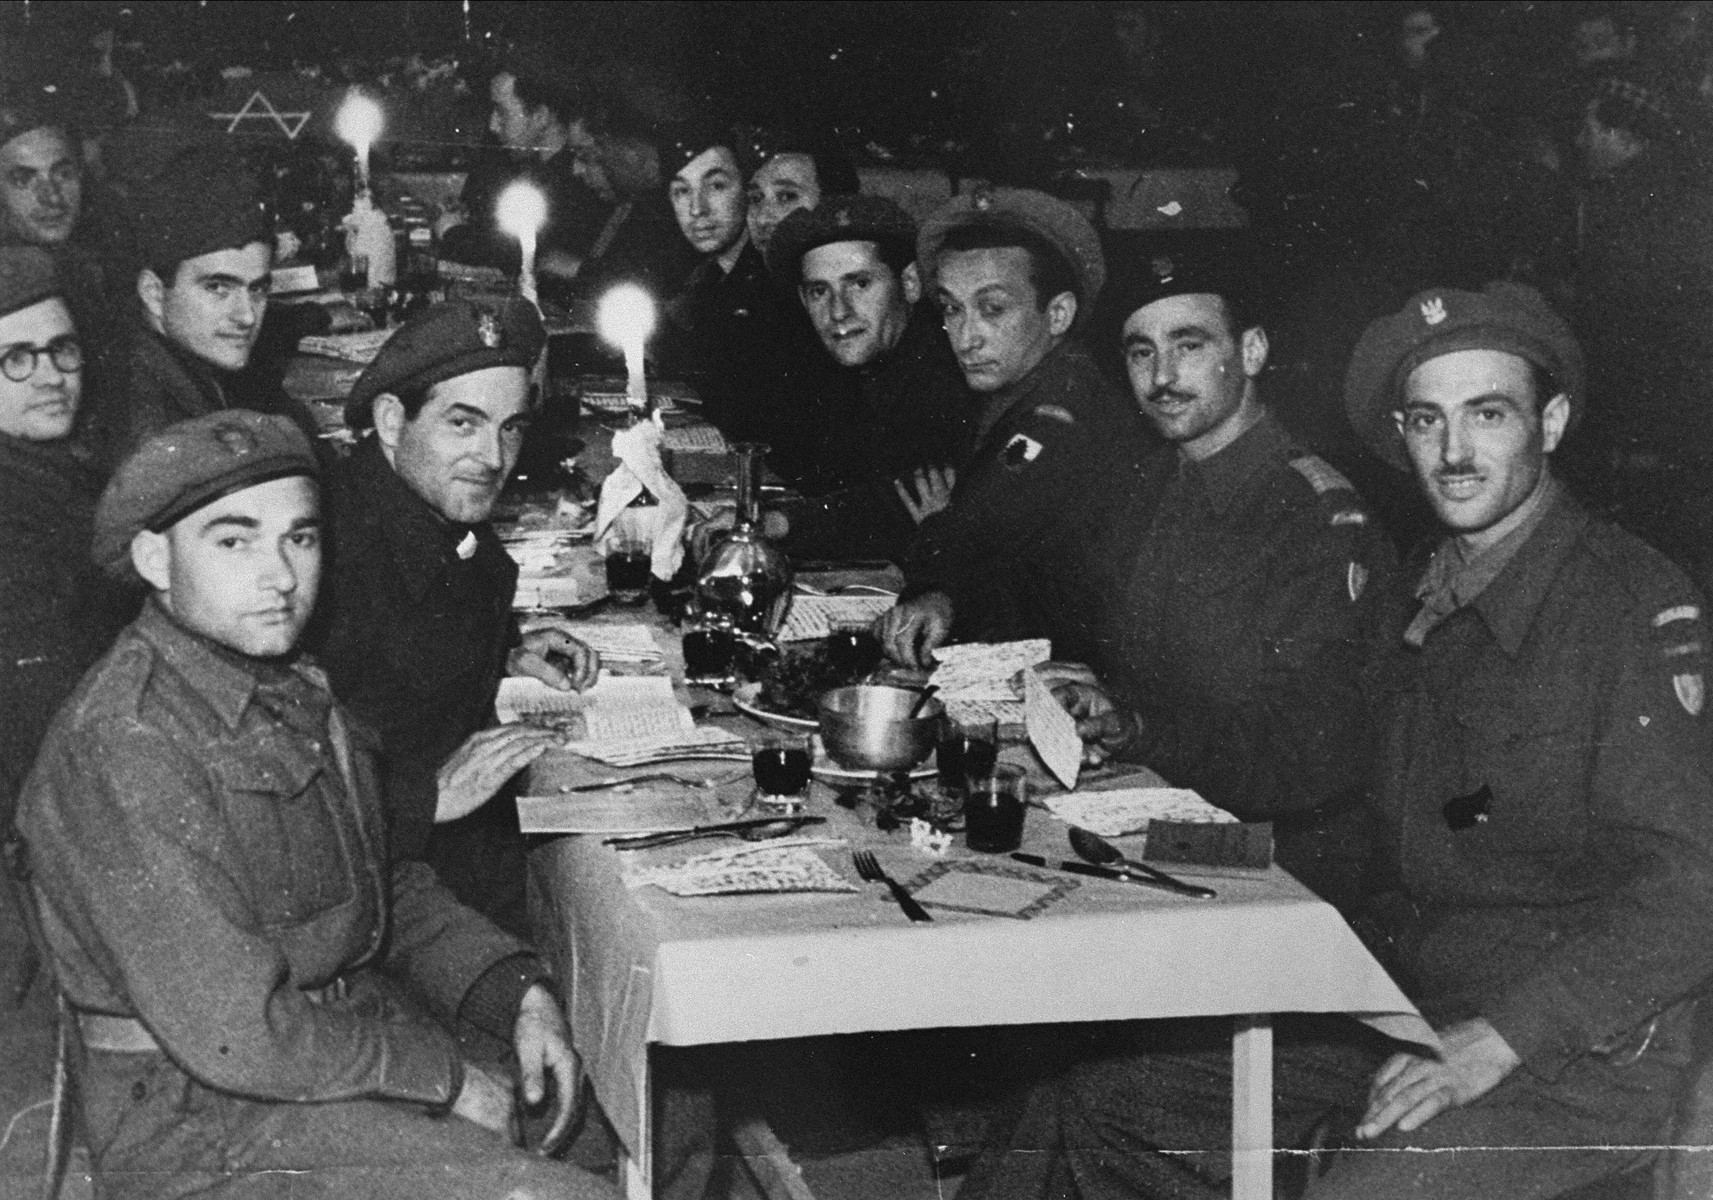 Jewish soldiers serving in various Allied armies celebrate Passover at a seder in Como, Italy.    Among those pictured is Jack Roth, a member of the Anders Army.